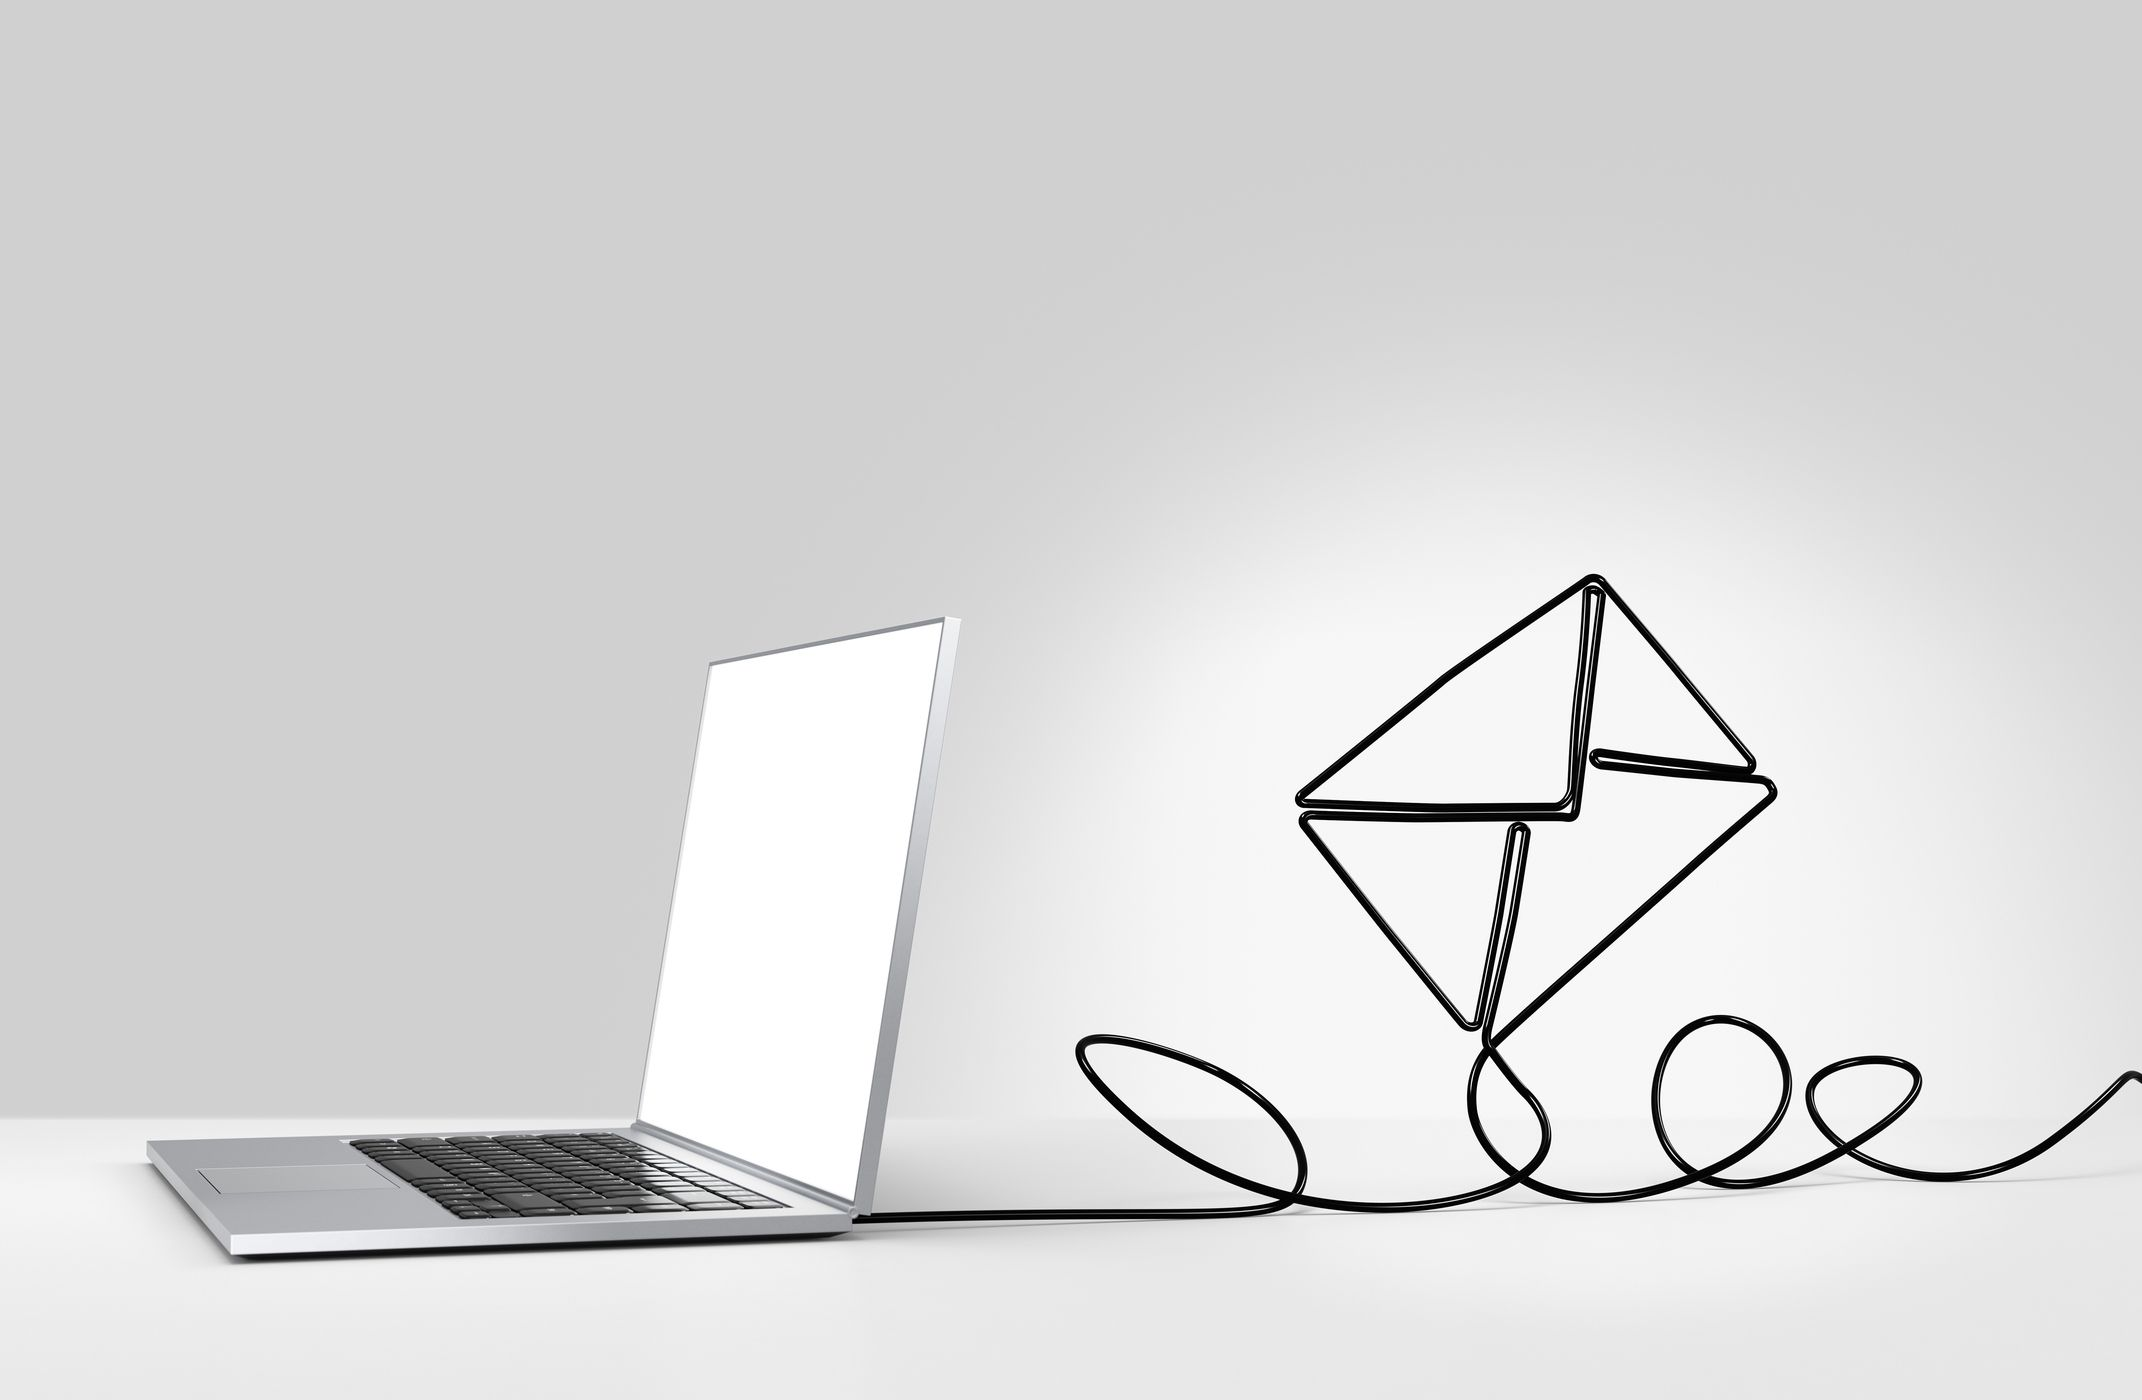 Laptop with email illustration